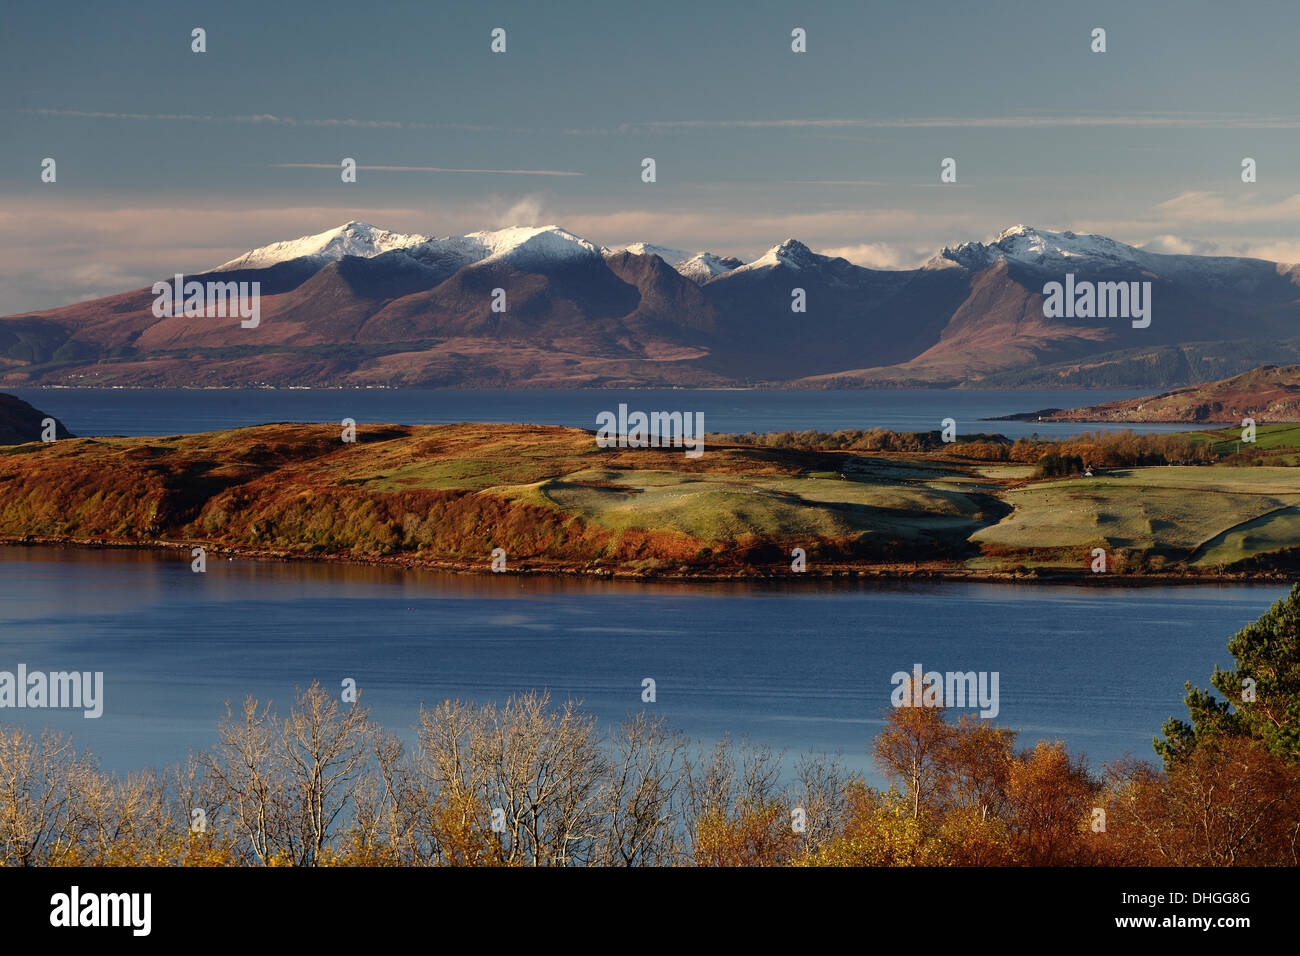 Haylie Brae, North Ayrshire, Scotland, UK, Sunday, 10 November, 2013. Early morning Autumn sunshine over the snow topped mountains on the Island of Arran on the Firth of Clyde with the island of Great Cumbrae in the foreground. Stock Photo